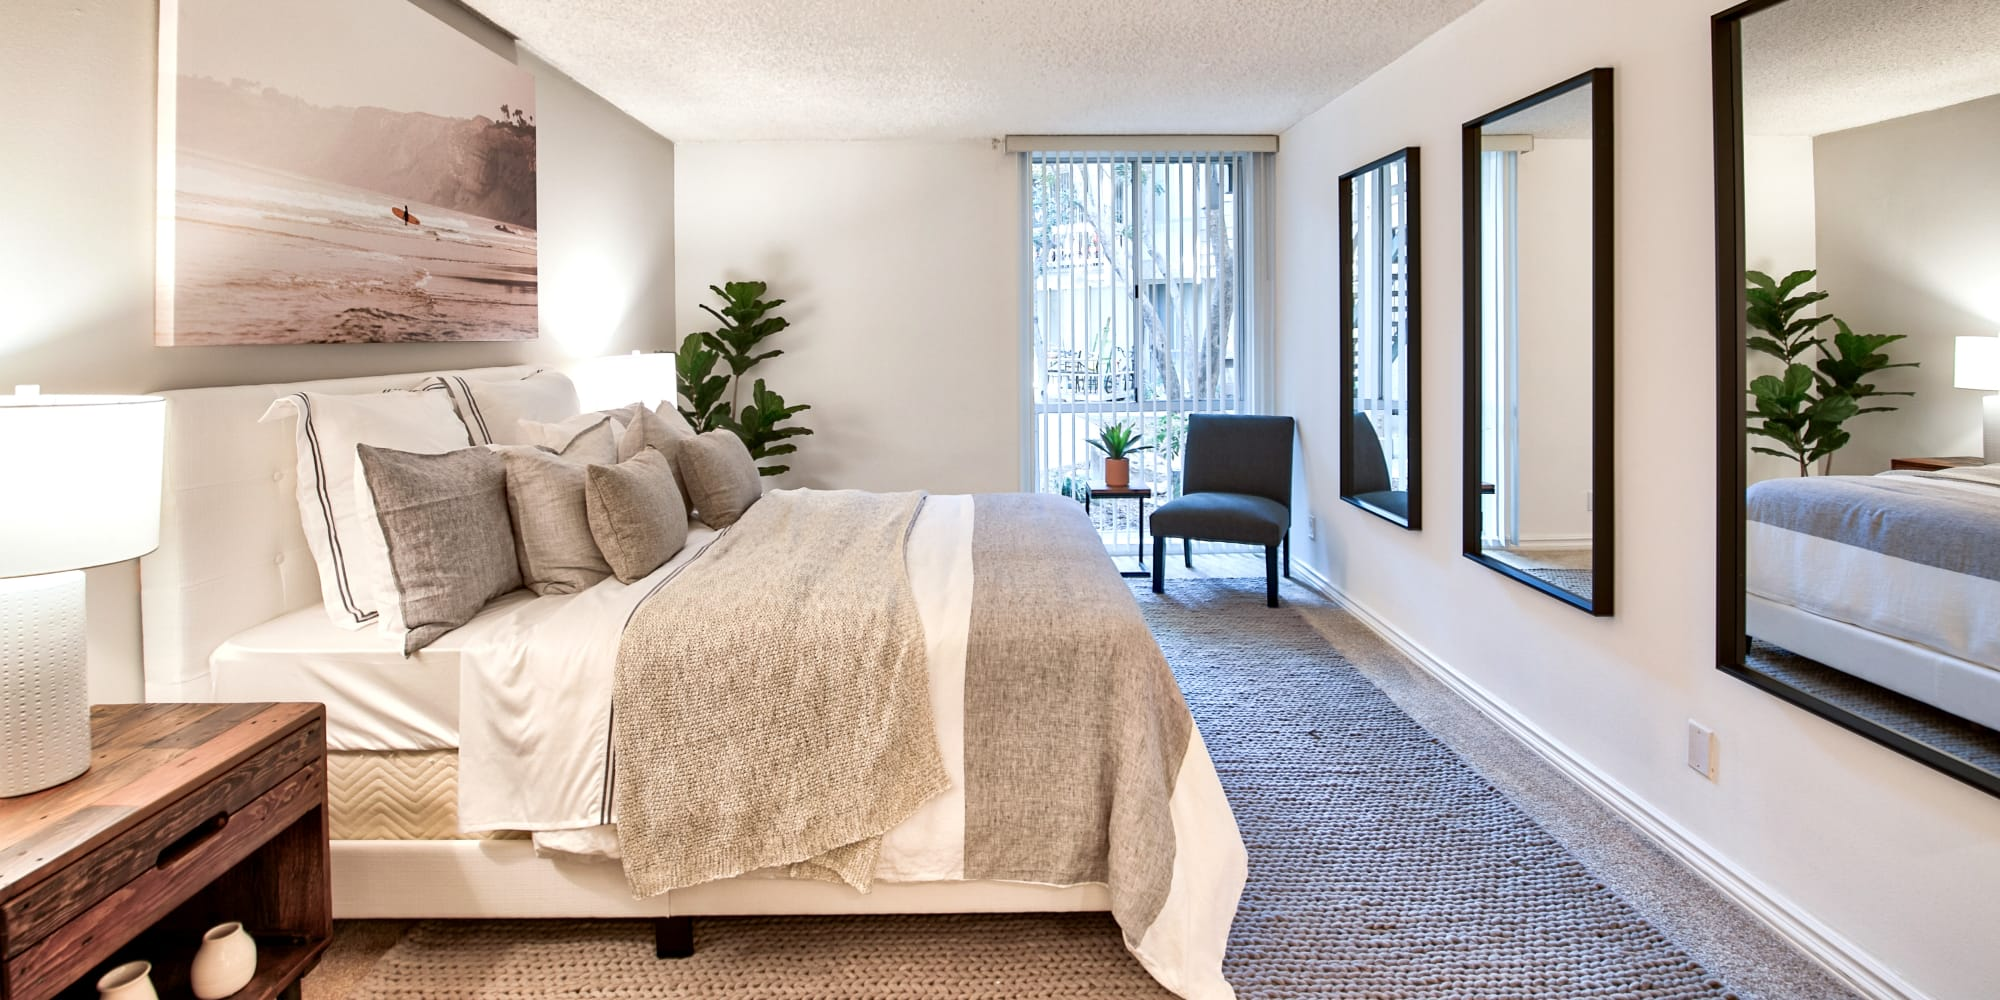 Main bedroom with a large bay window at The Meadows in Culver City, California